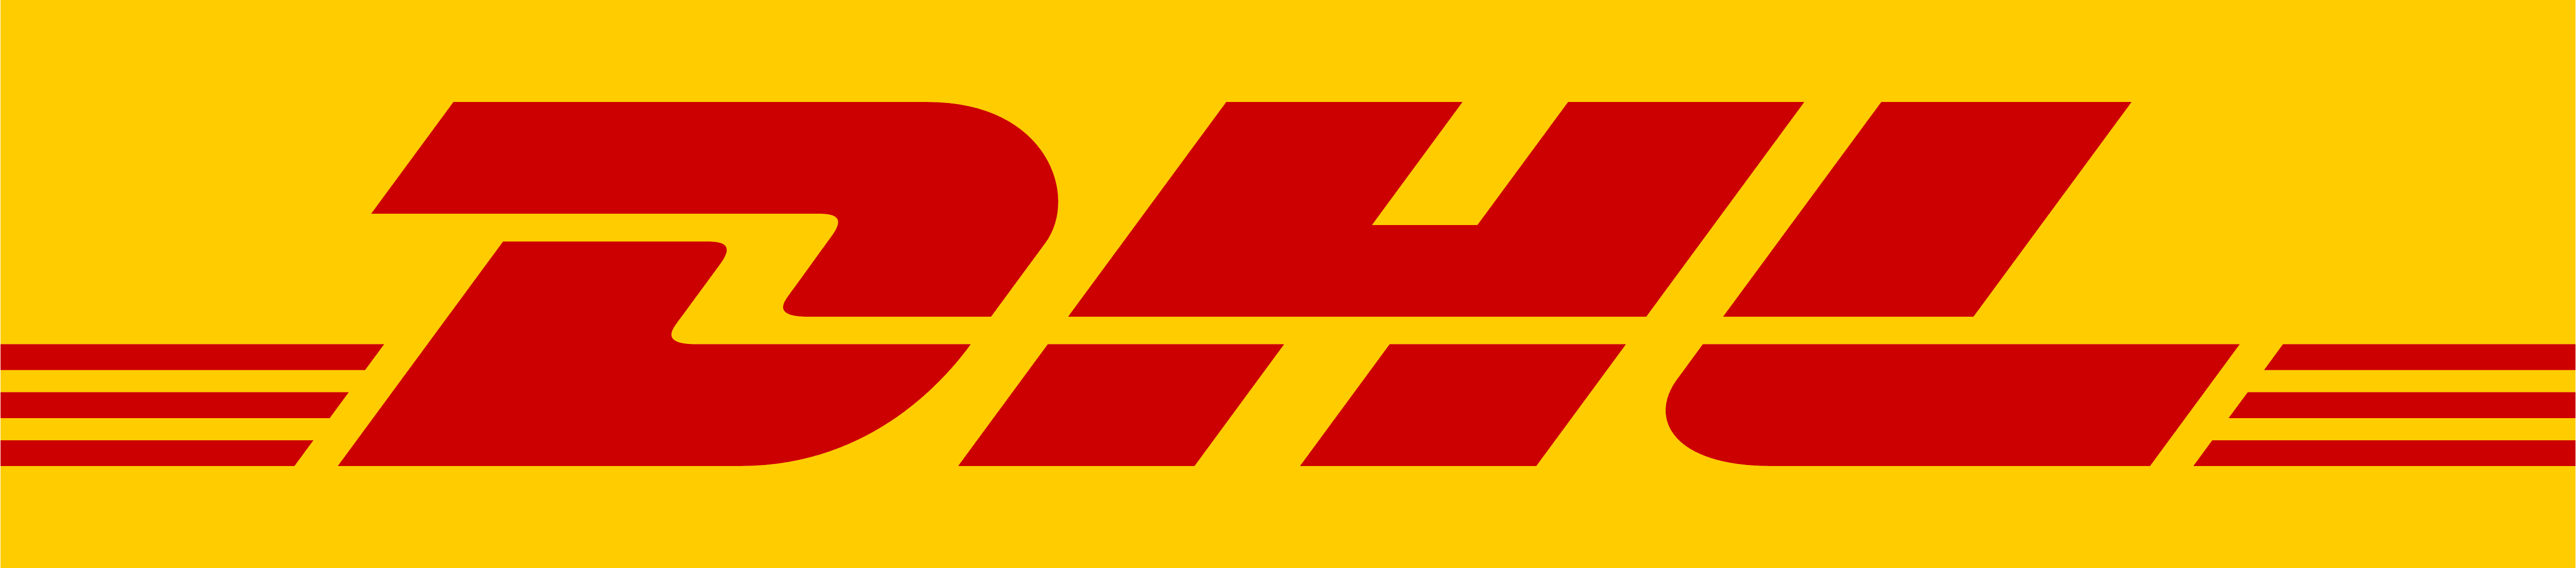 dhl � logos download